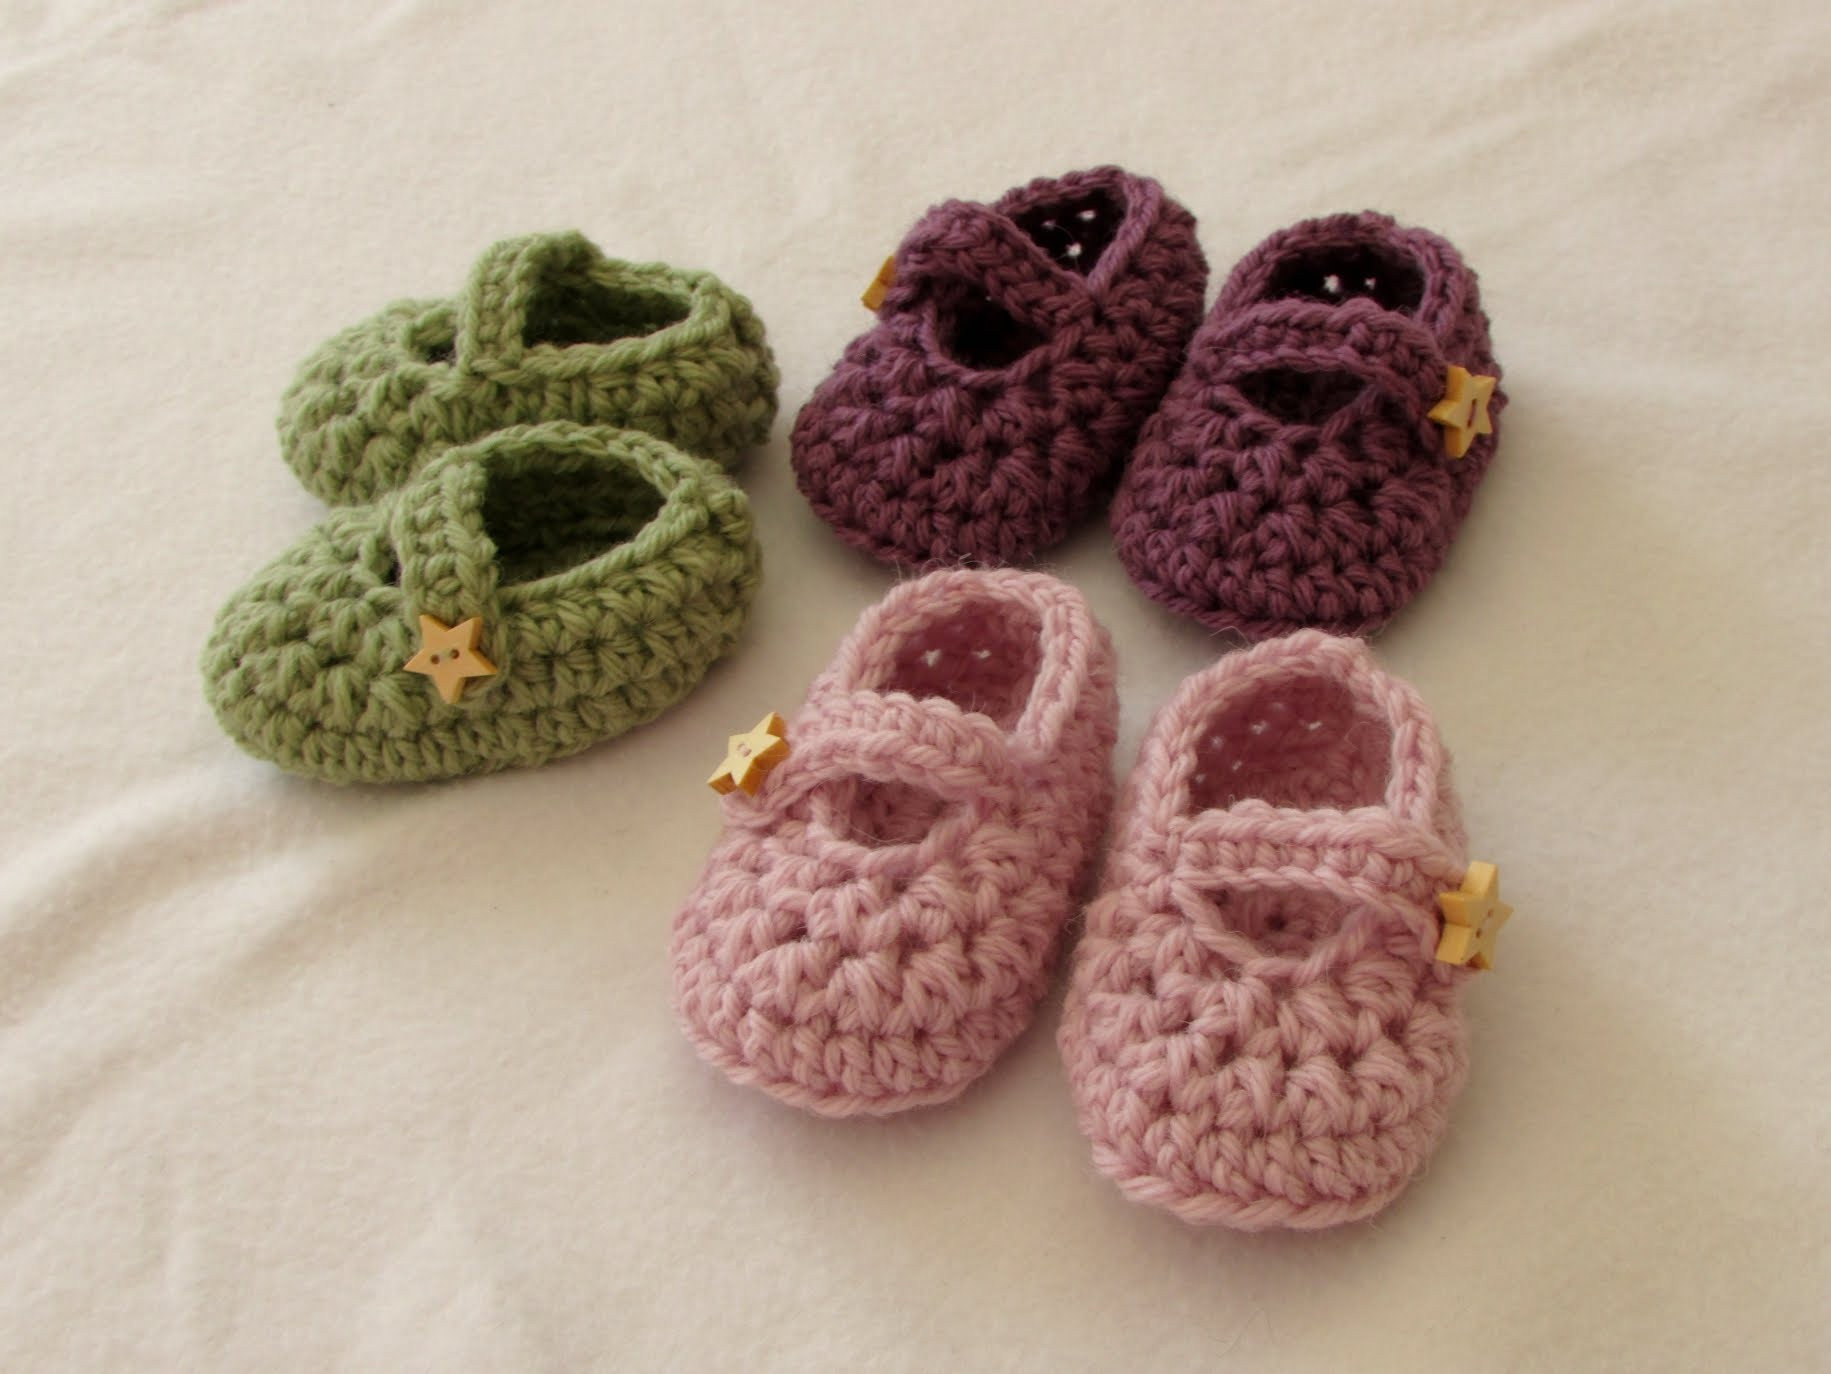 Crochet Baby Booties Fresh Free Crochet Patterns for Beginners Baby Booties Of Crochet Baby Booties Fresh Crochet Baby Mary Jane Booties Free Patterns